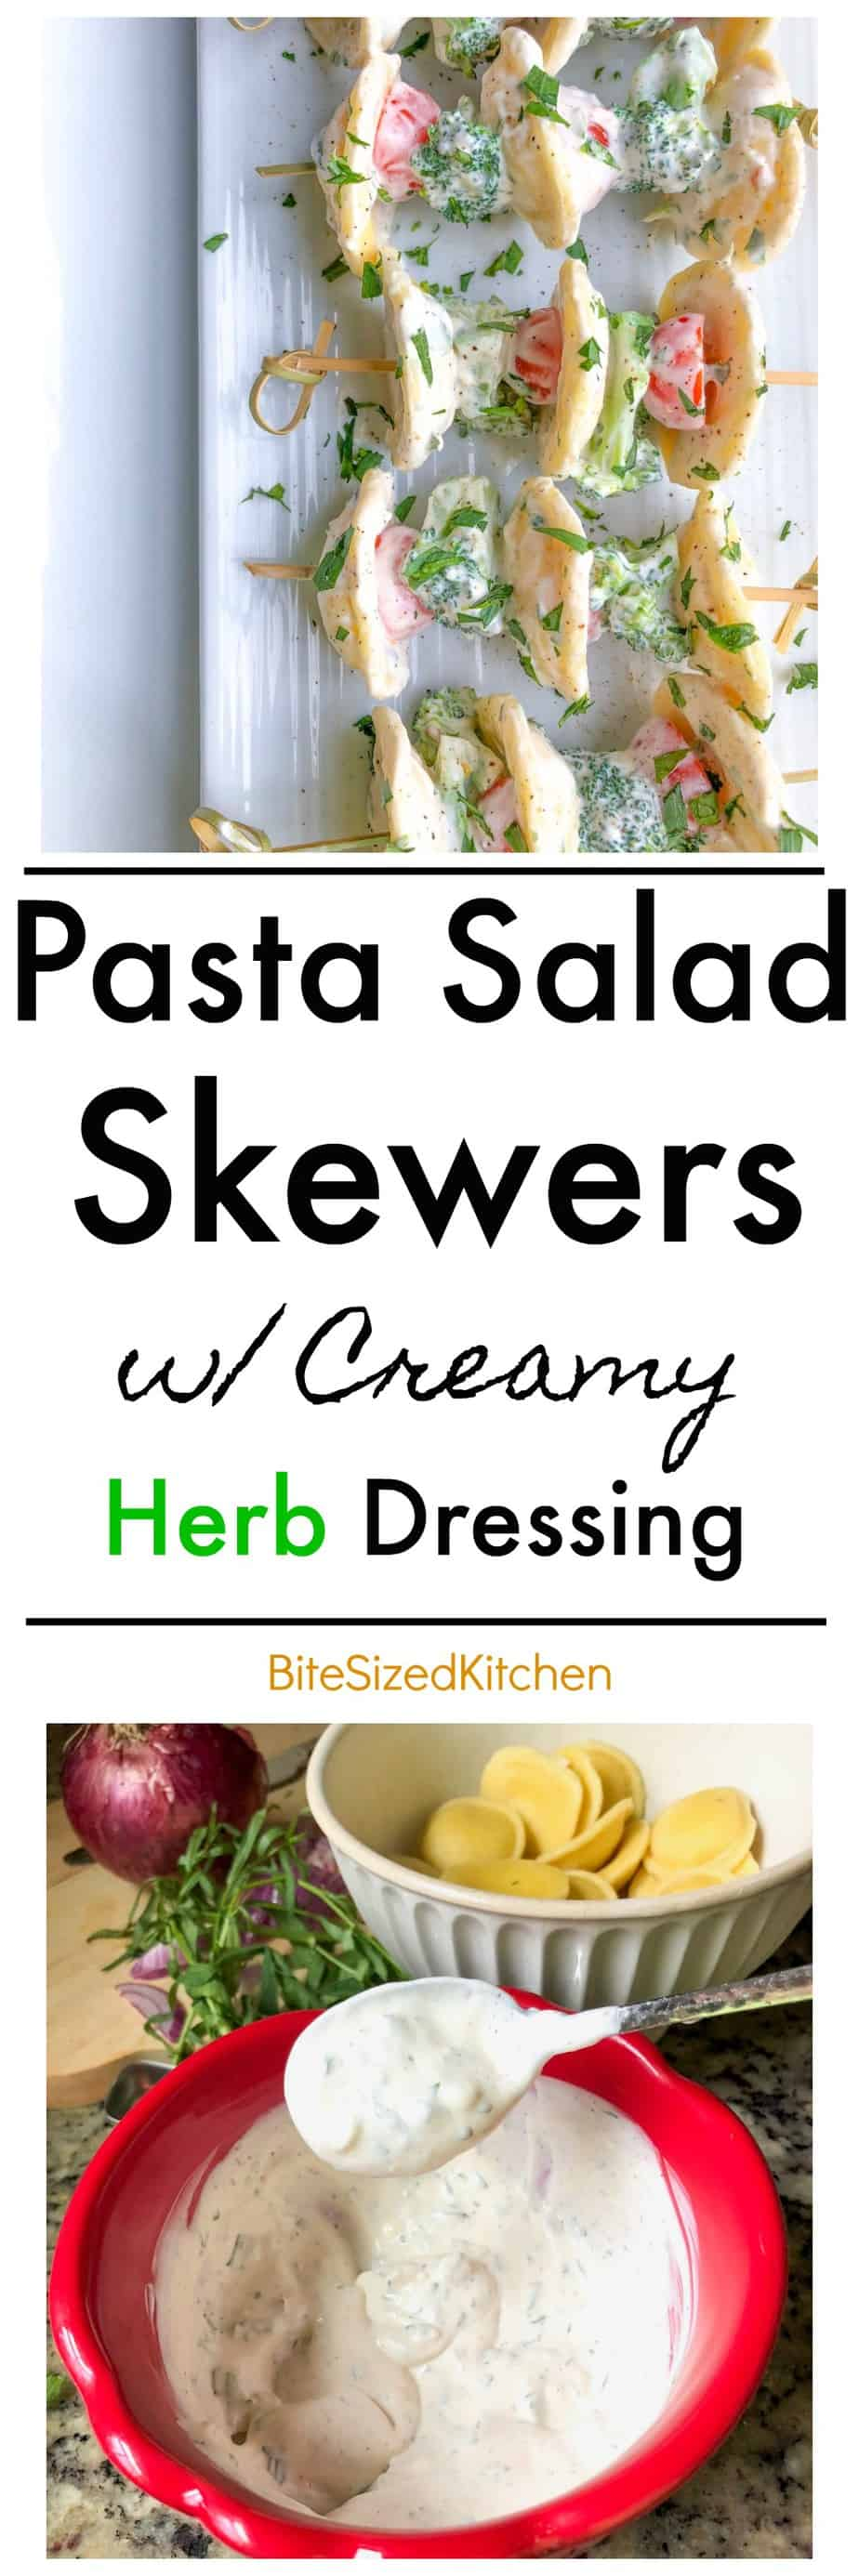 Creamy Summer Cold Pasta Salad Appetizer Recipe | Easy Cold Pasta Salad Recipe | Pasta Salad Skewers Sticks | Broccoli and Tomato Pasta Salad | Cold Easy Summer Party Appetizer